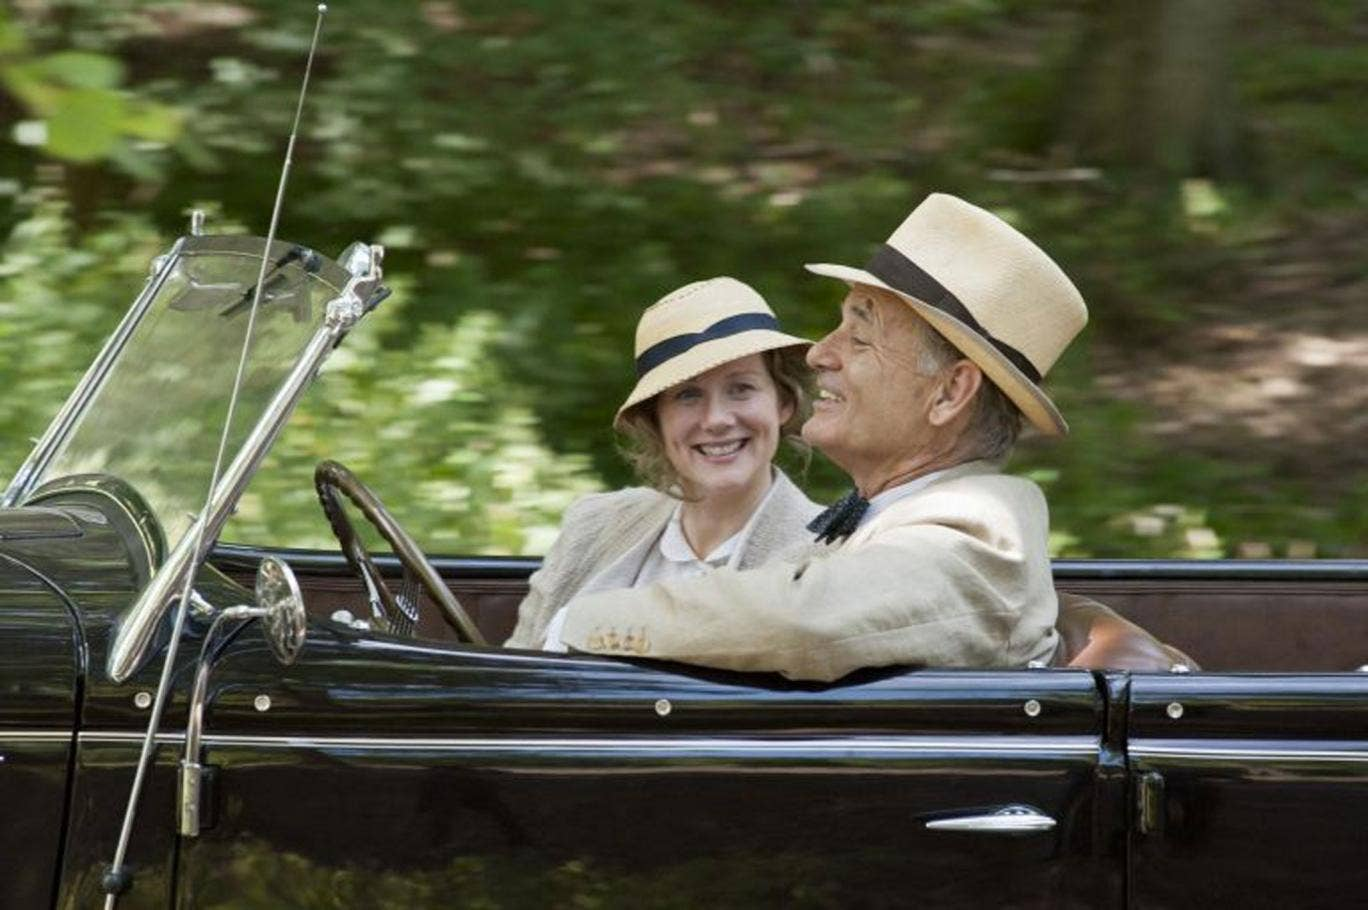 Driving Miss Daisy: Laura Linney and Bill Murray star in the prim drama 'Hyde Park on Hudson'